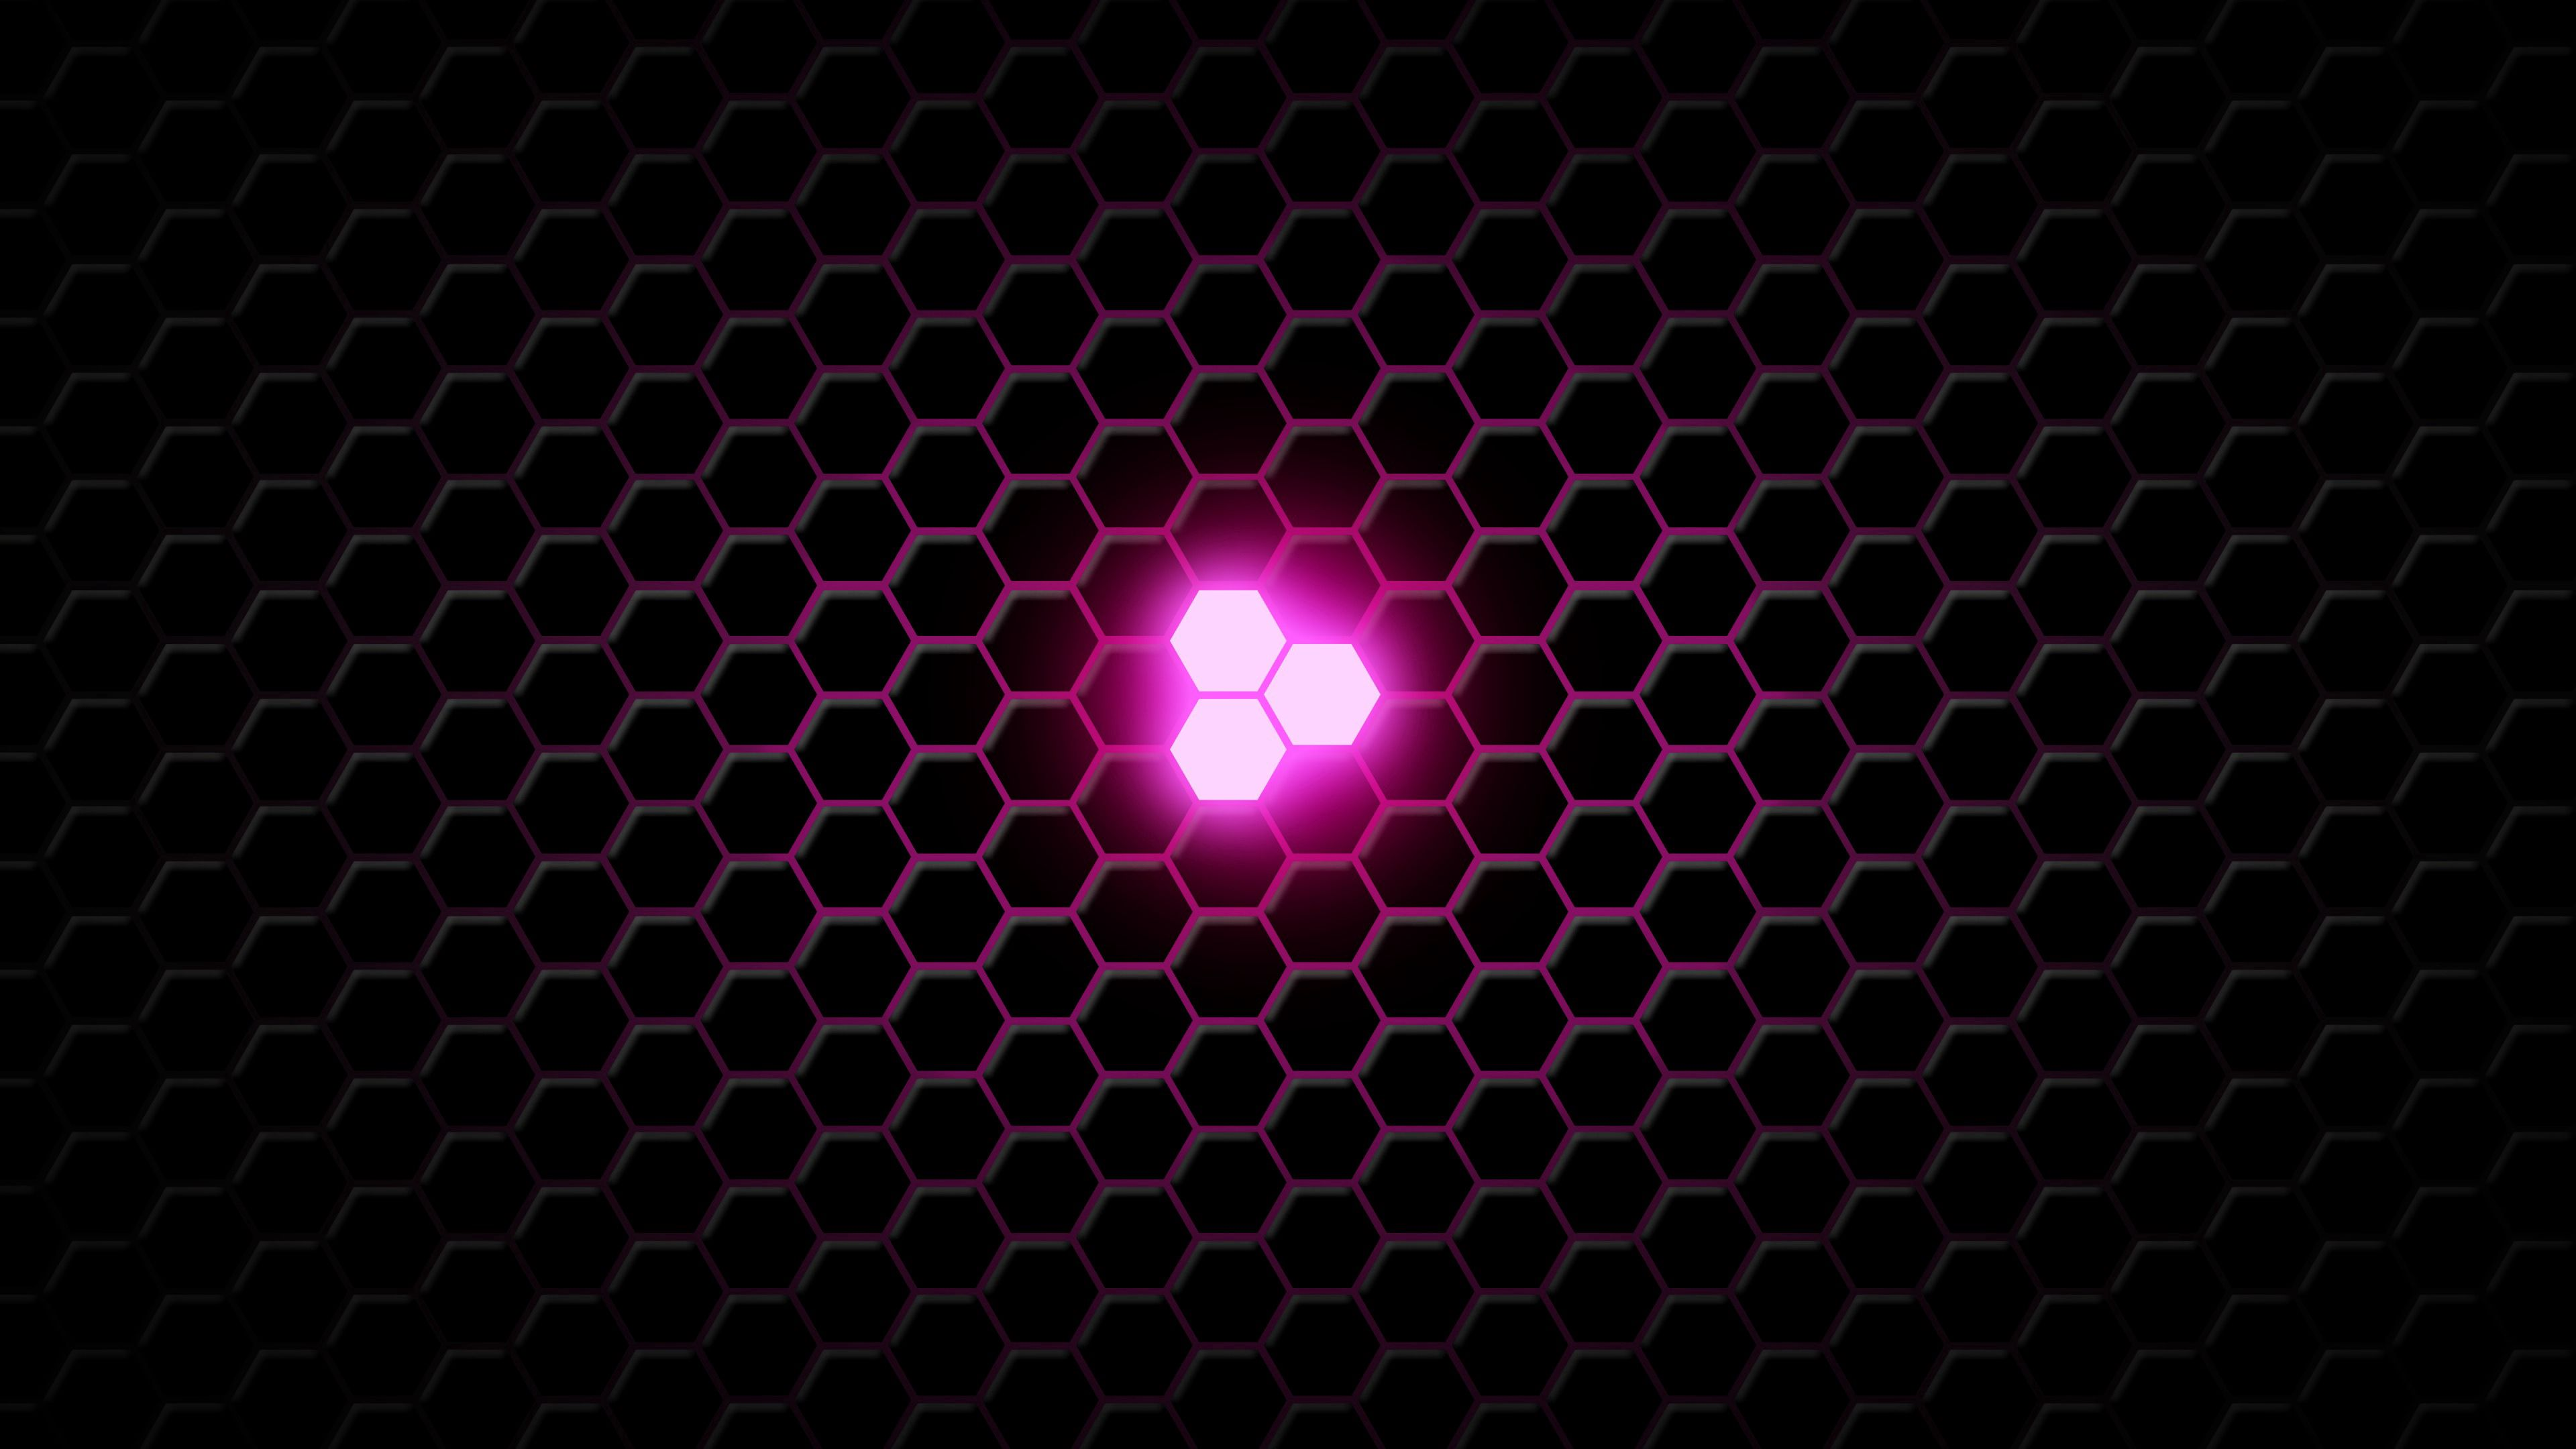 95444 download wallpaper Lilac, Texture, Textures, Neon, Glow, Hexagons, Hexagonals screensavers and pictures for free